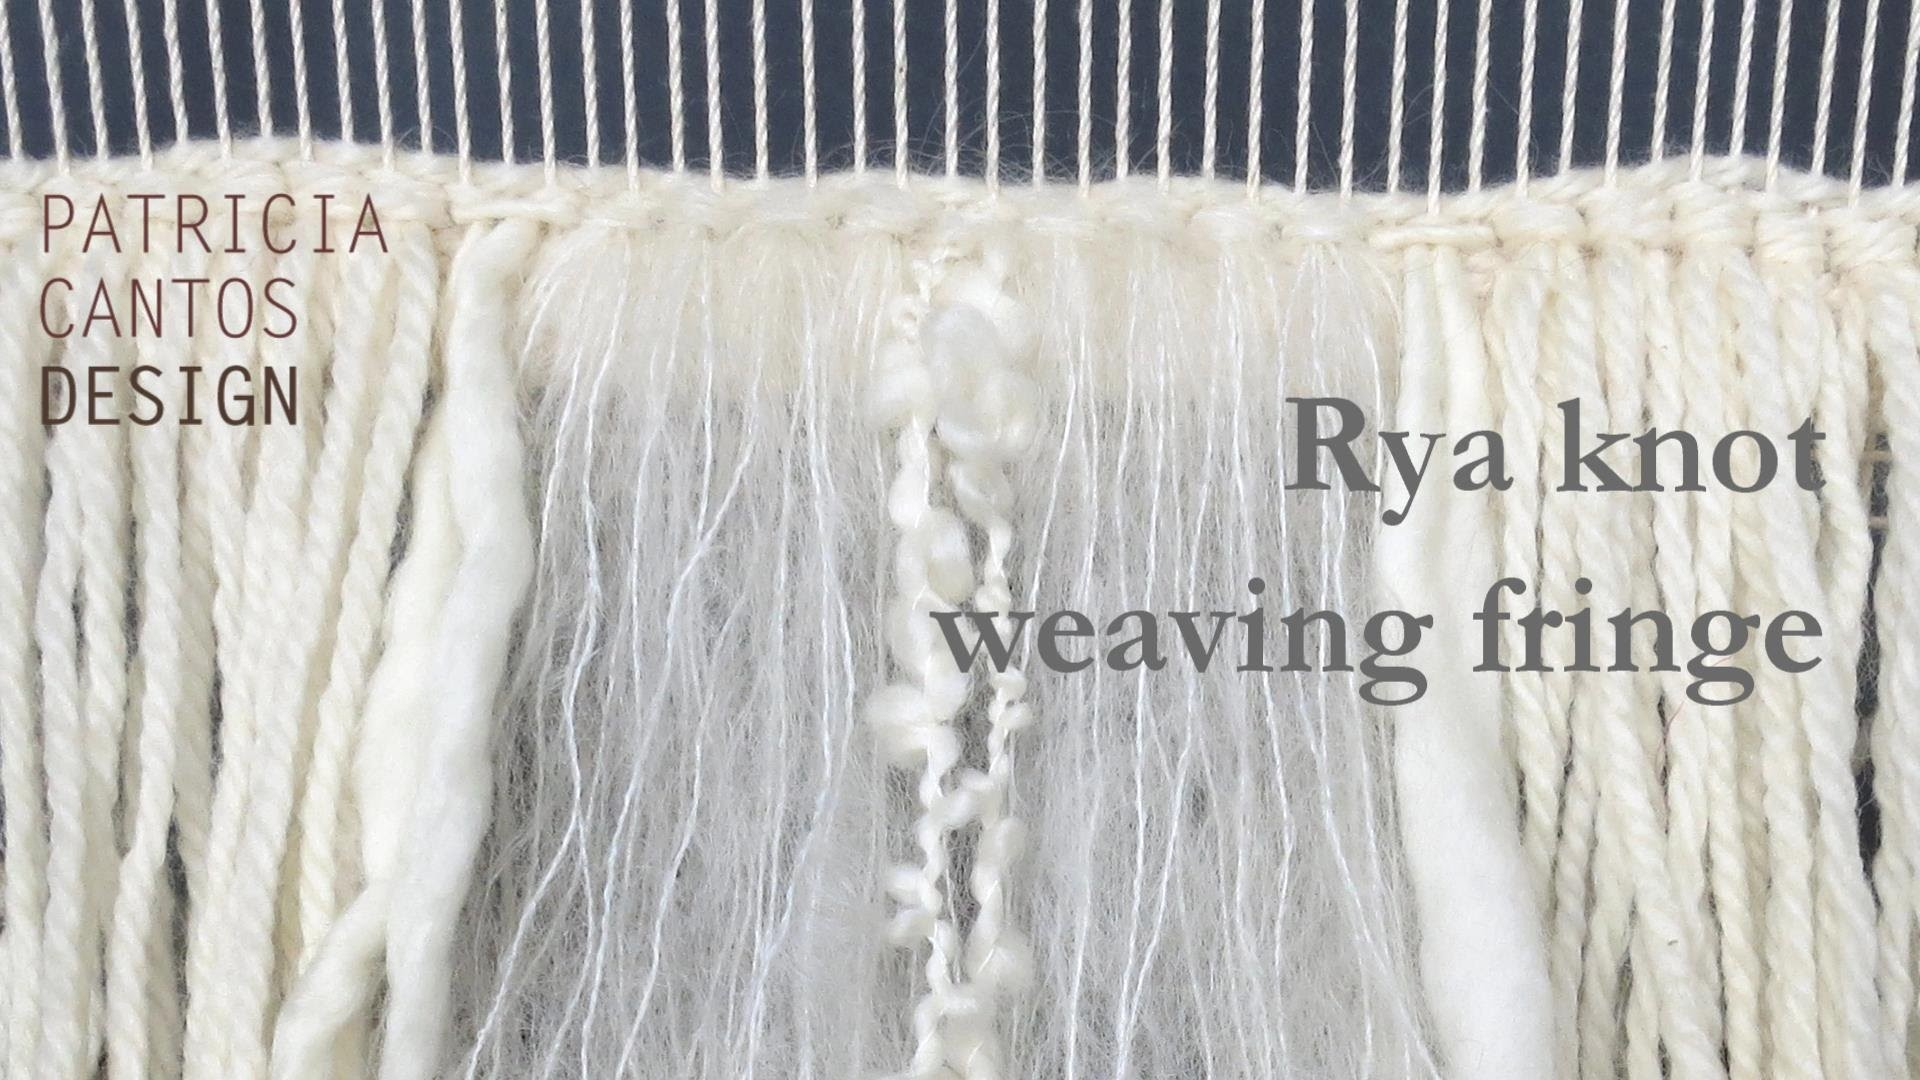 Rya knot weaving fringe - Weaving lesson for beginners